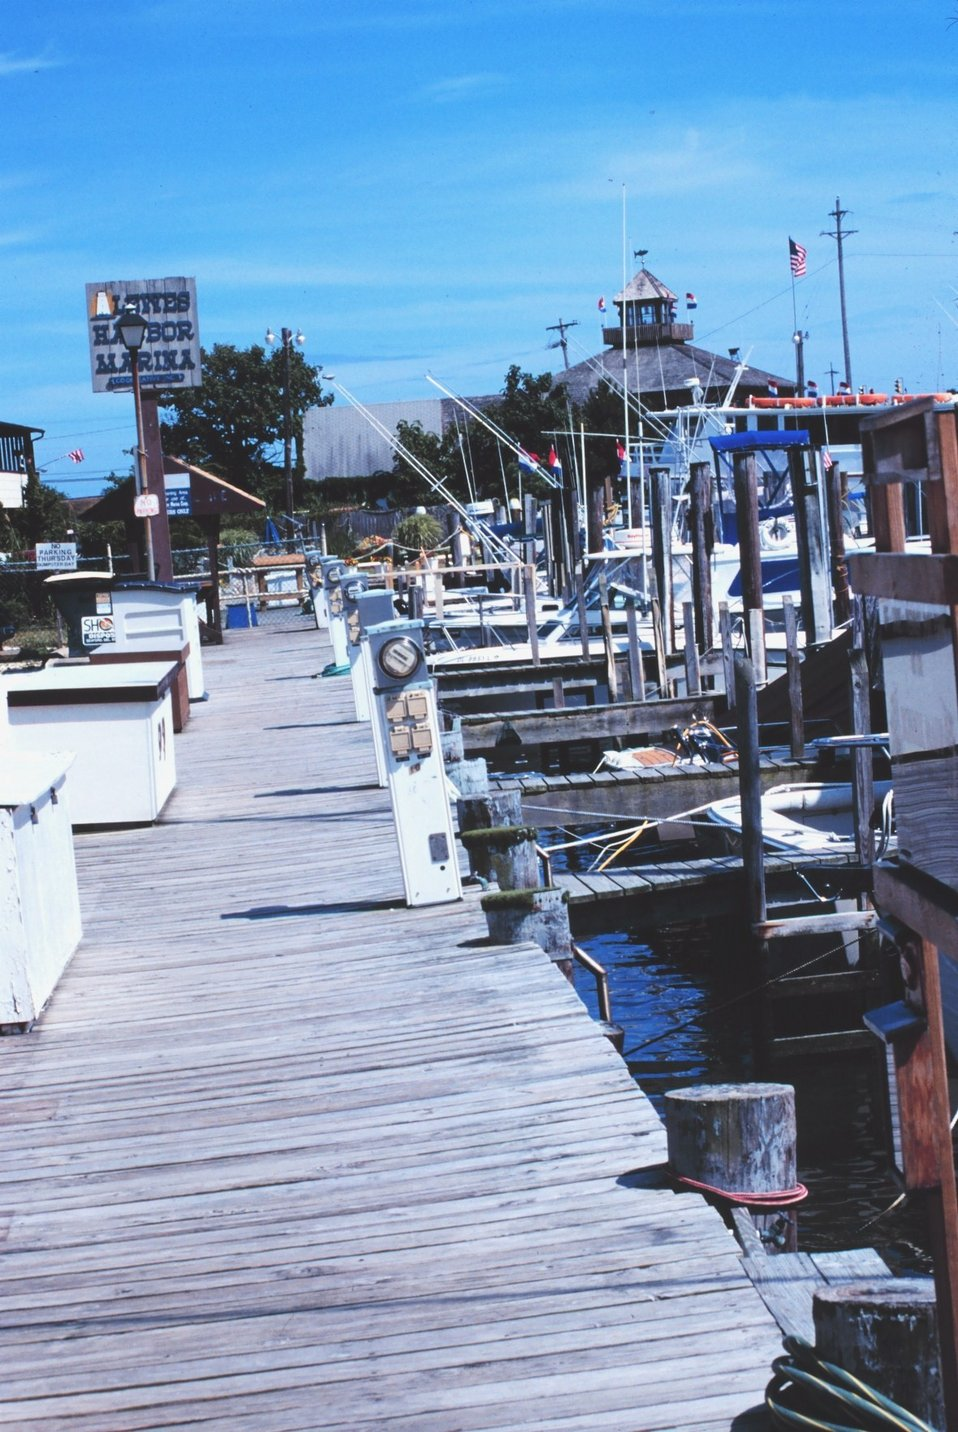 Recreational sport fishing boats at a pier in Lewes